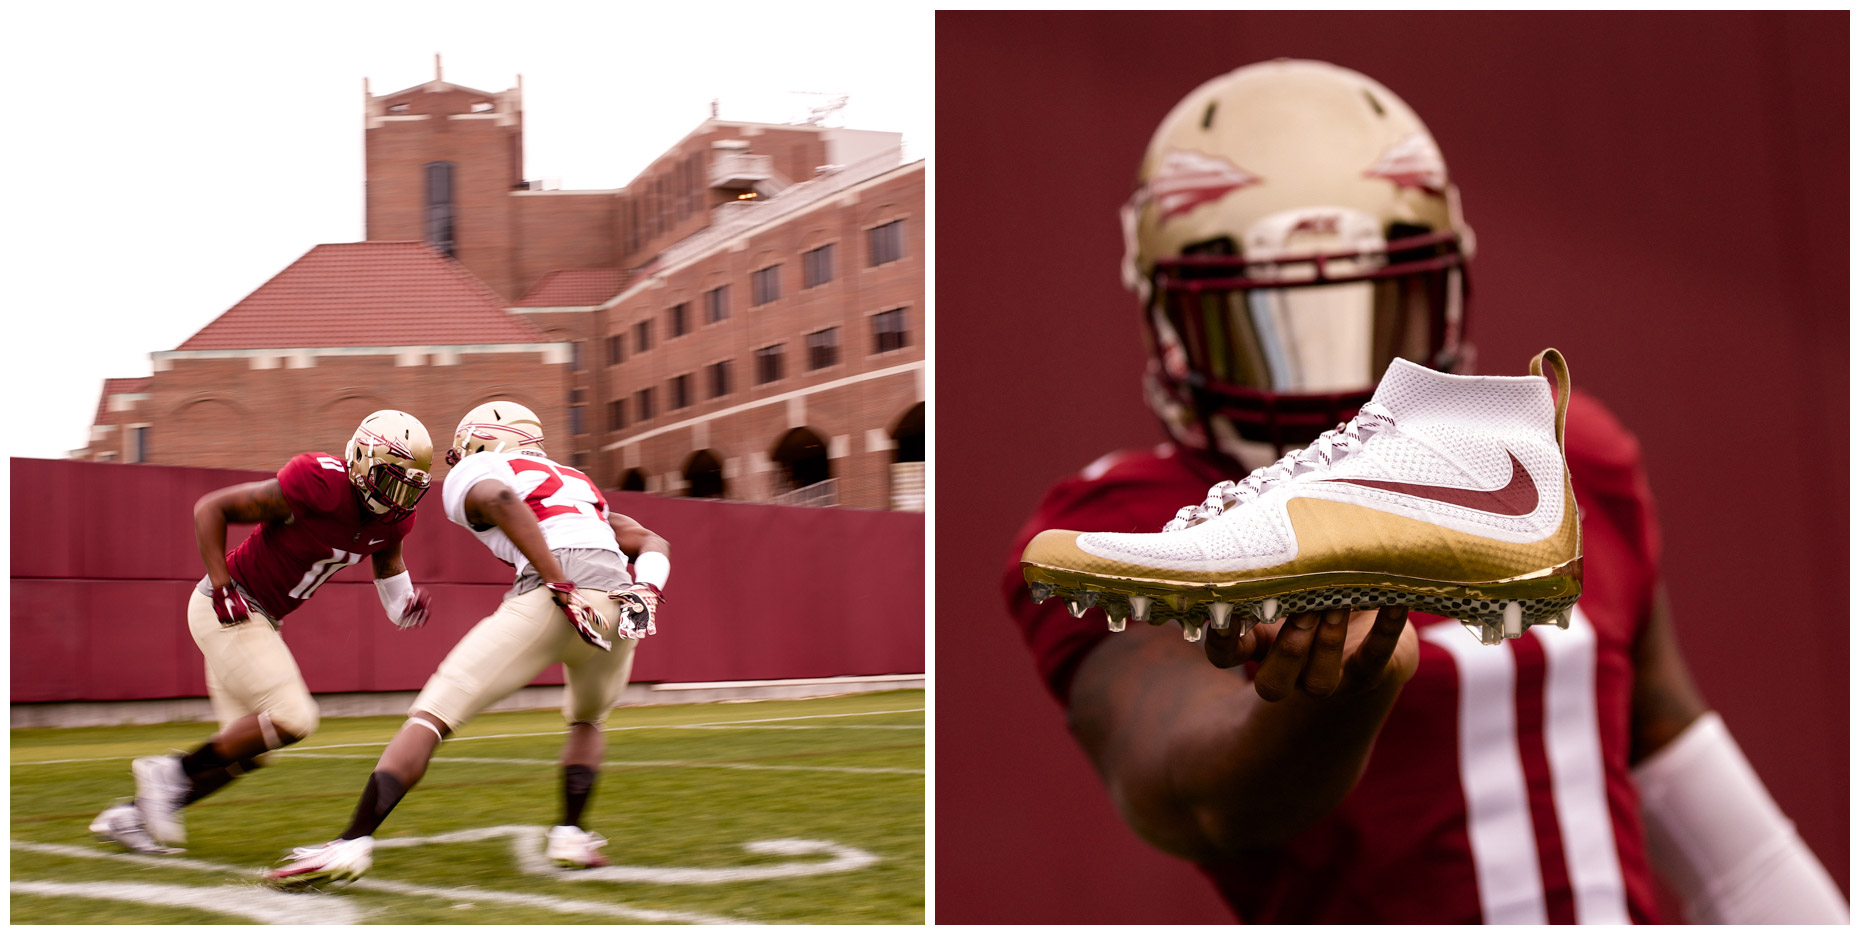 Florida State Seminoles | Project for Nike Digital